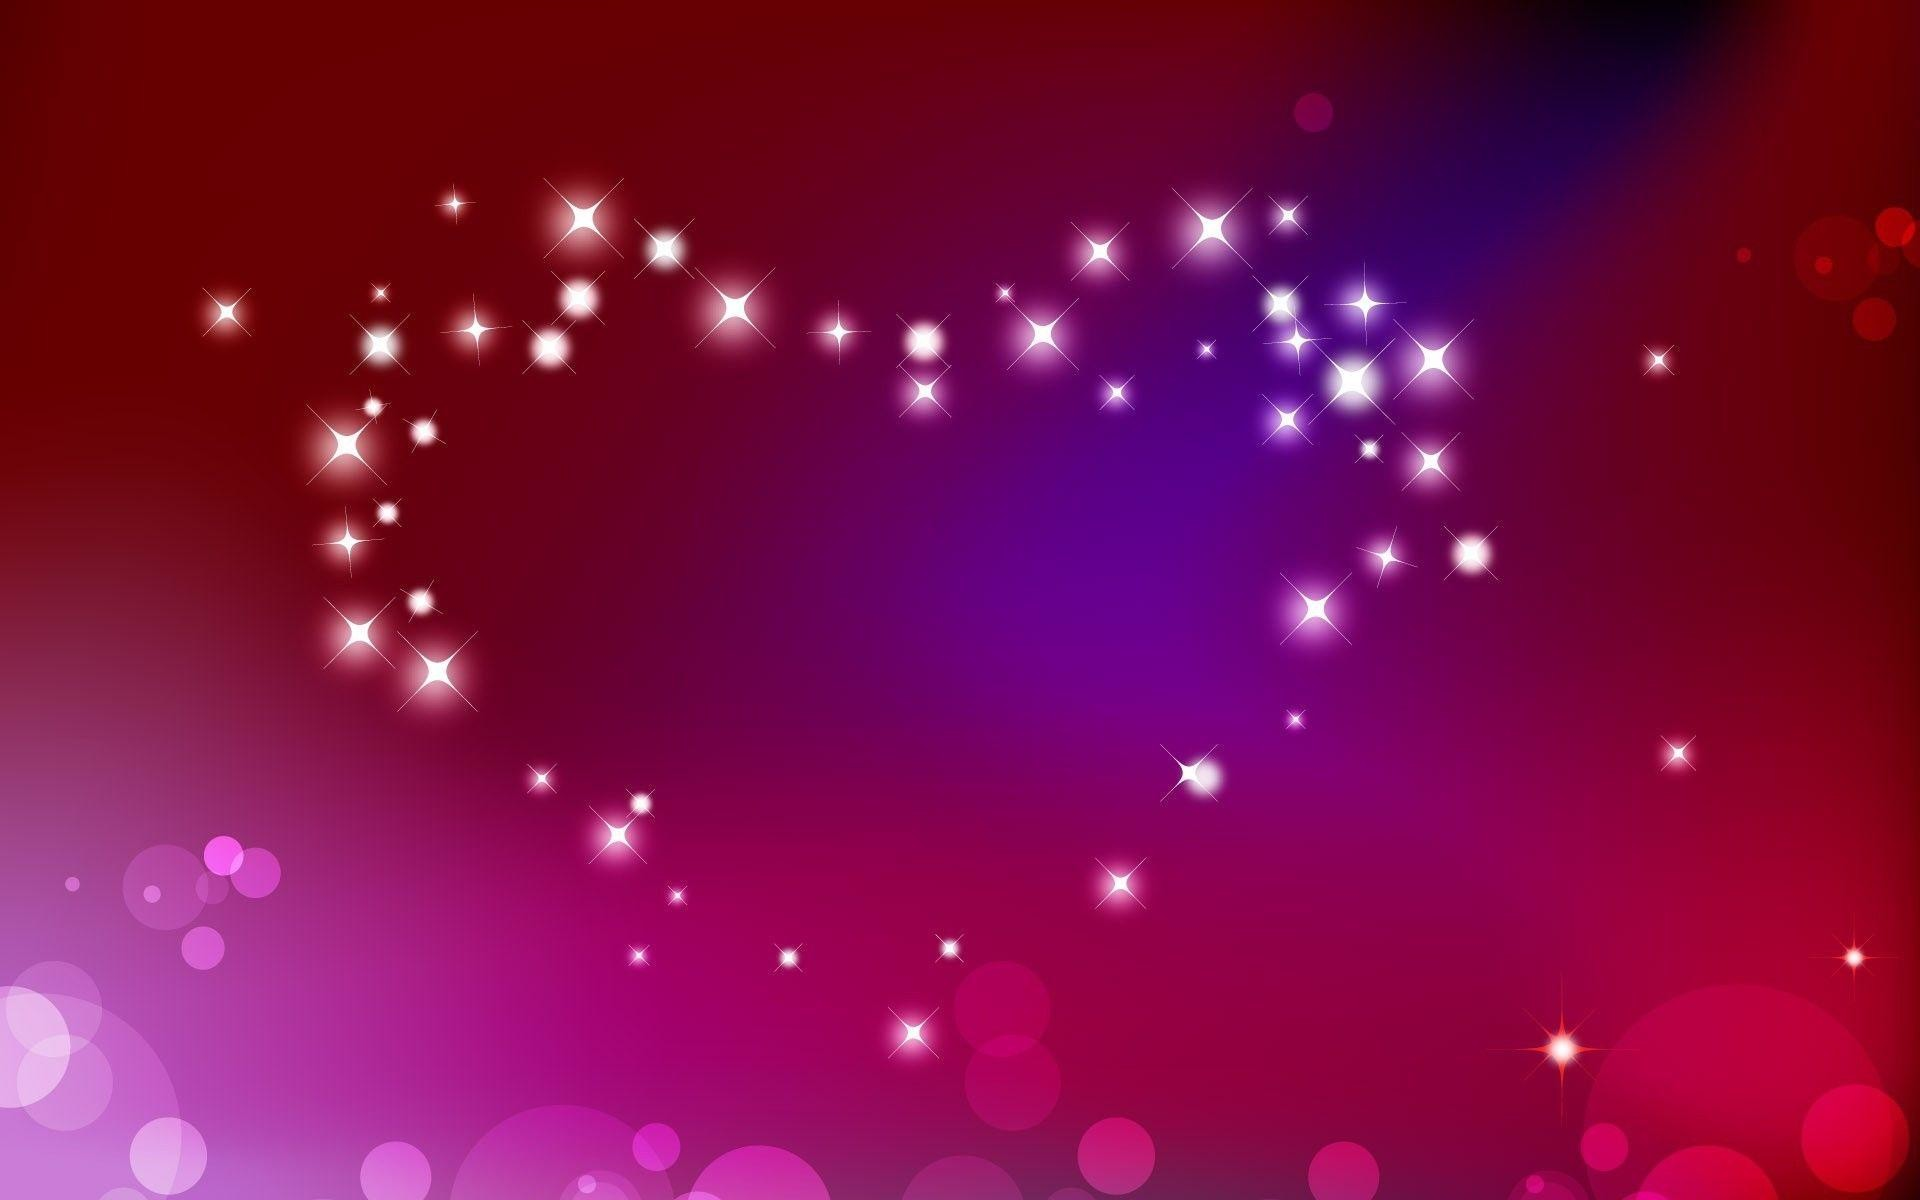 Wallpapers For > Wallpaper Hd Abstract Love